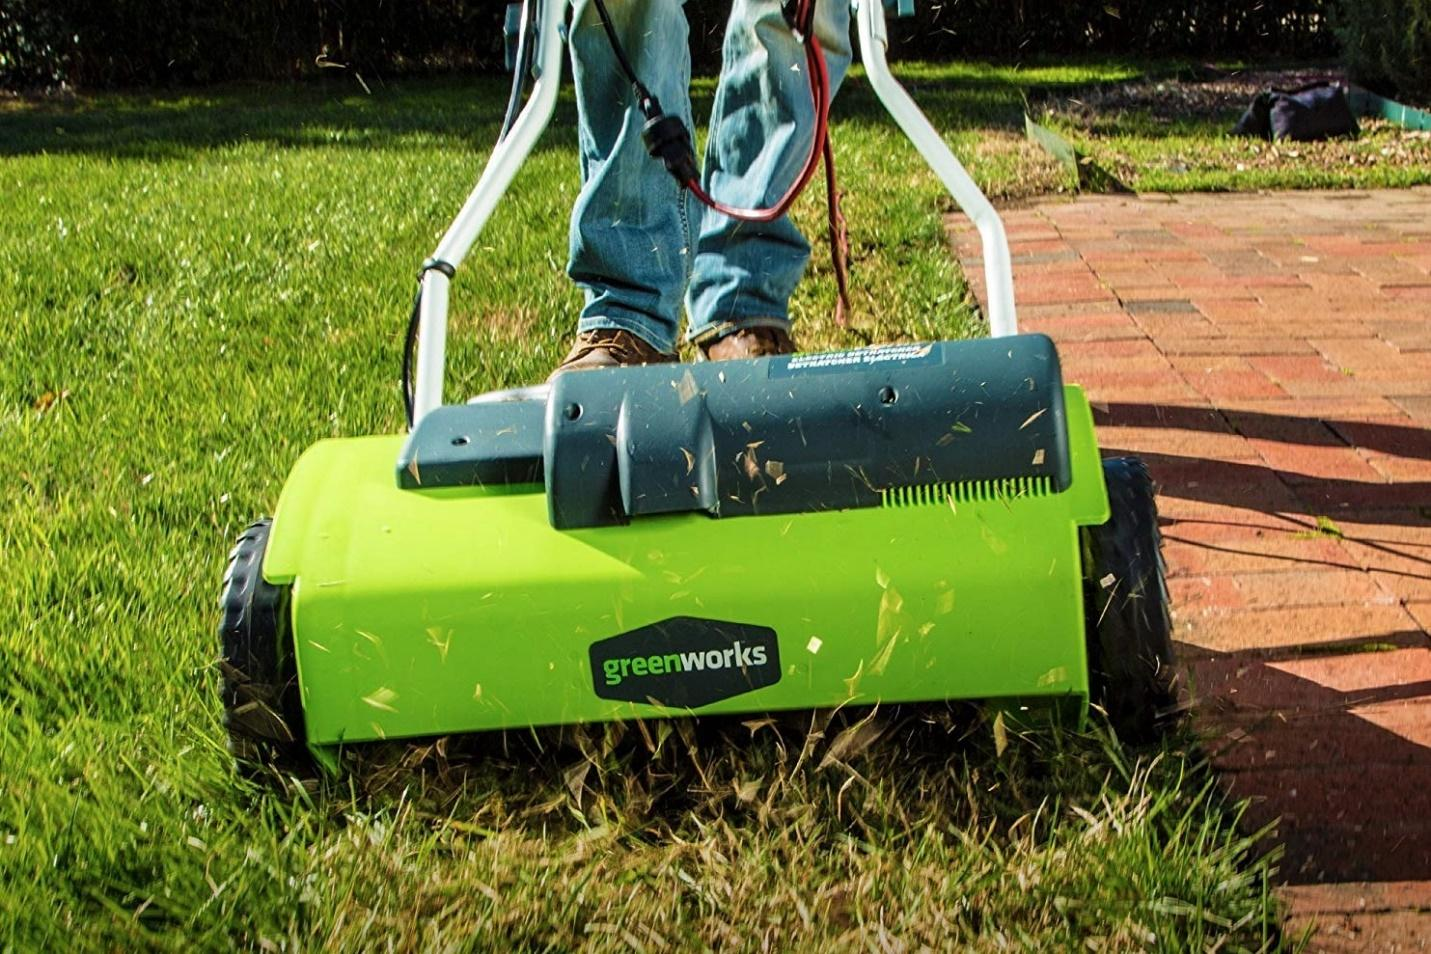 https://mydecorative.com/wp-content/uploads/2018/12/electric-lawn-dethatcher.jpg